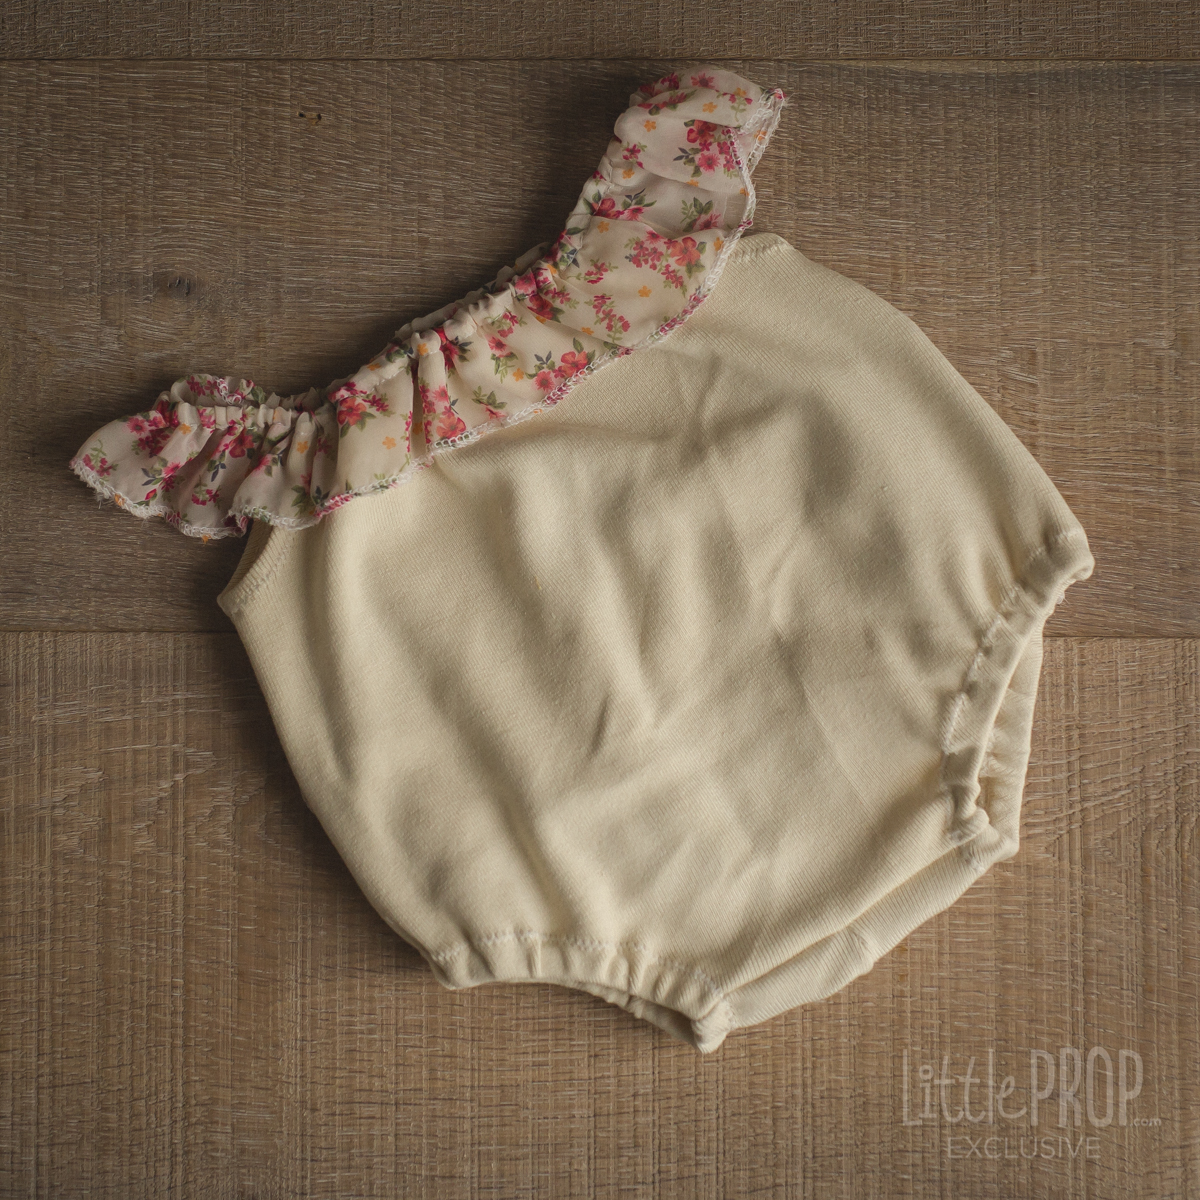 c77413aa2 Home/Outfits/ Sitter & Toddler Bodysuit • Spring Flowers • 6-12 Months. 50  of 54. Sitter bodysuit Photography Prop ...